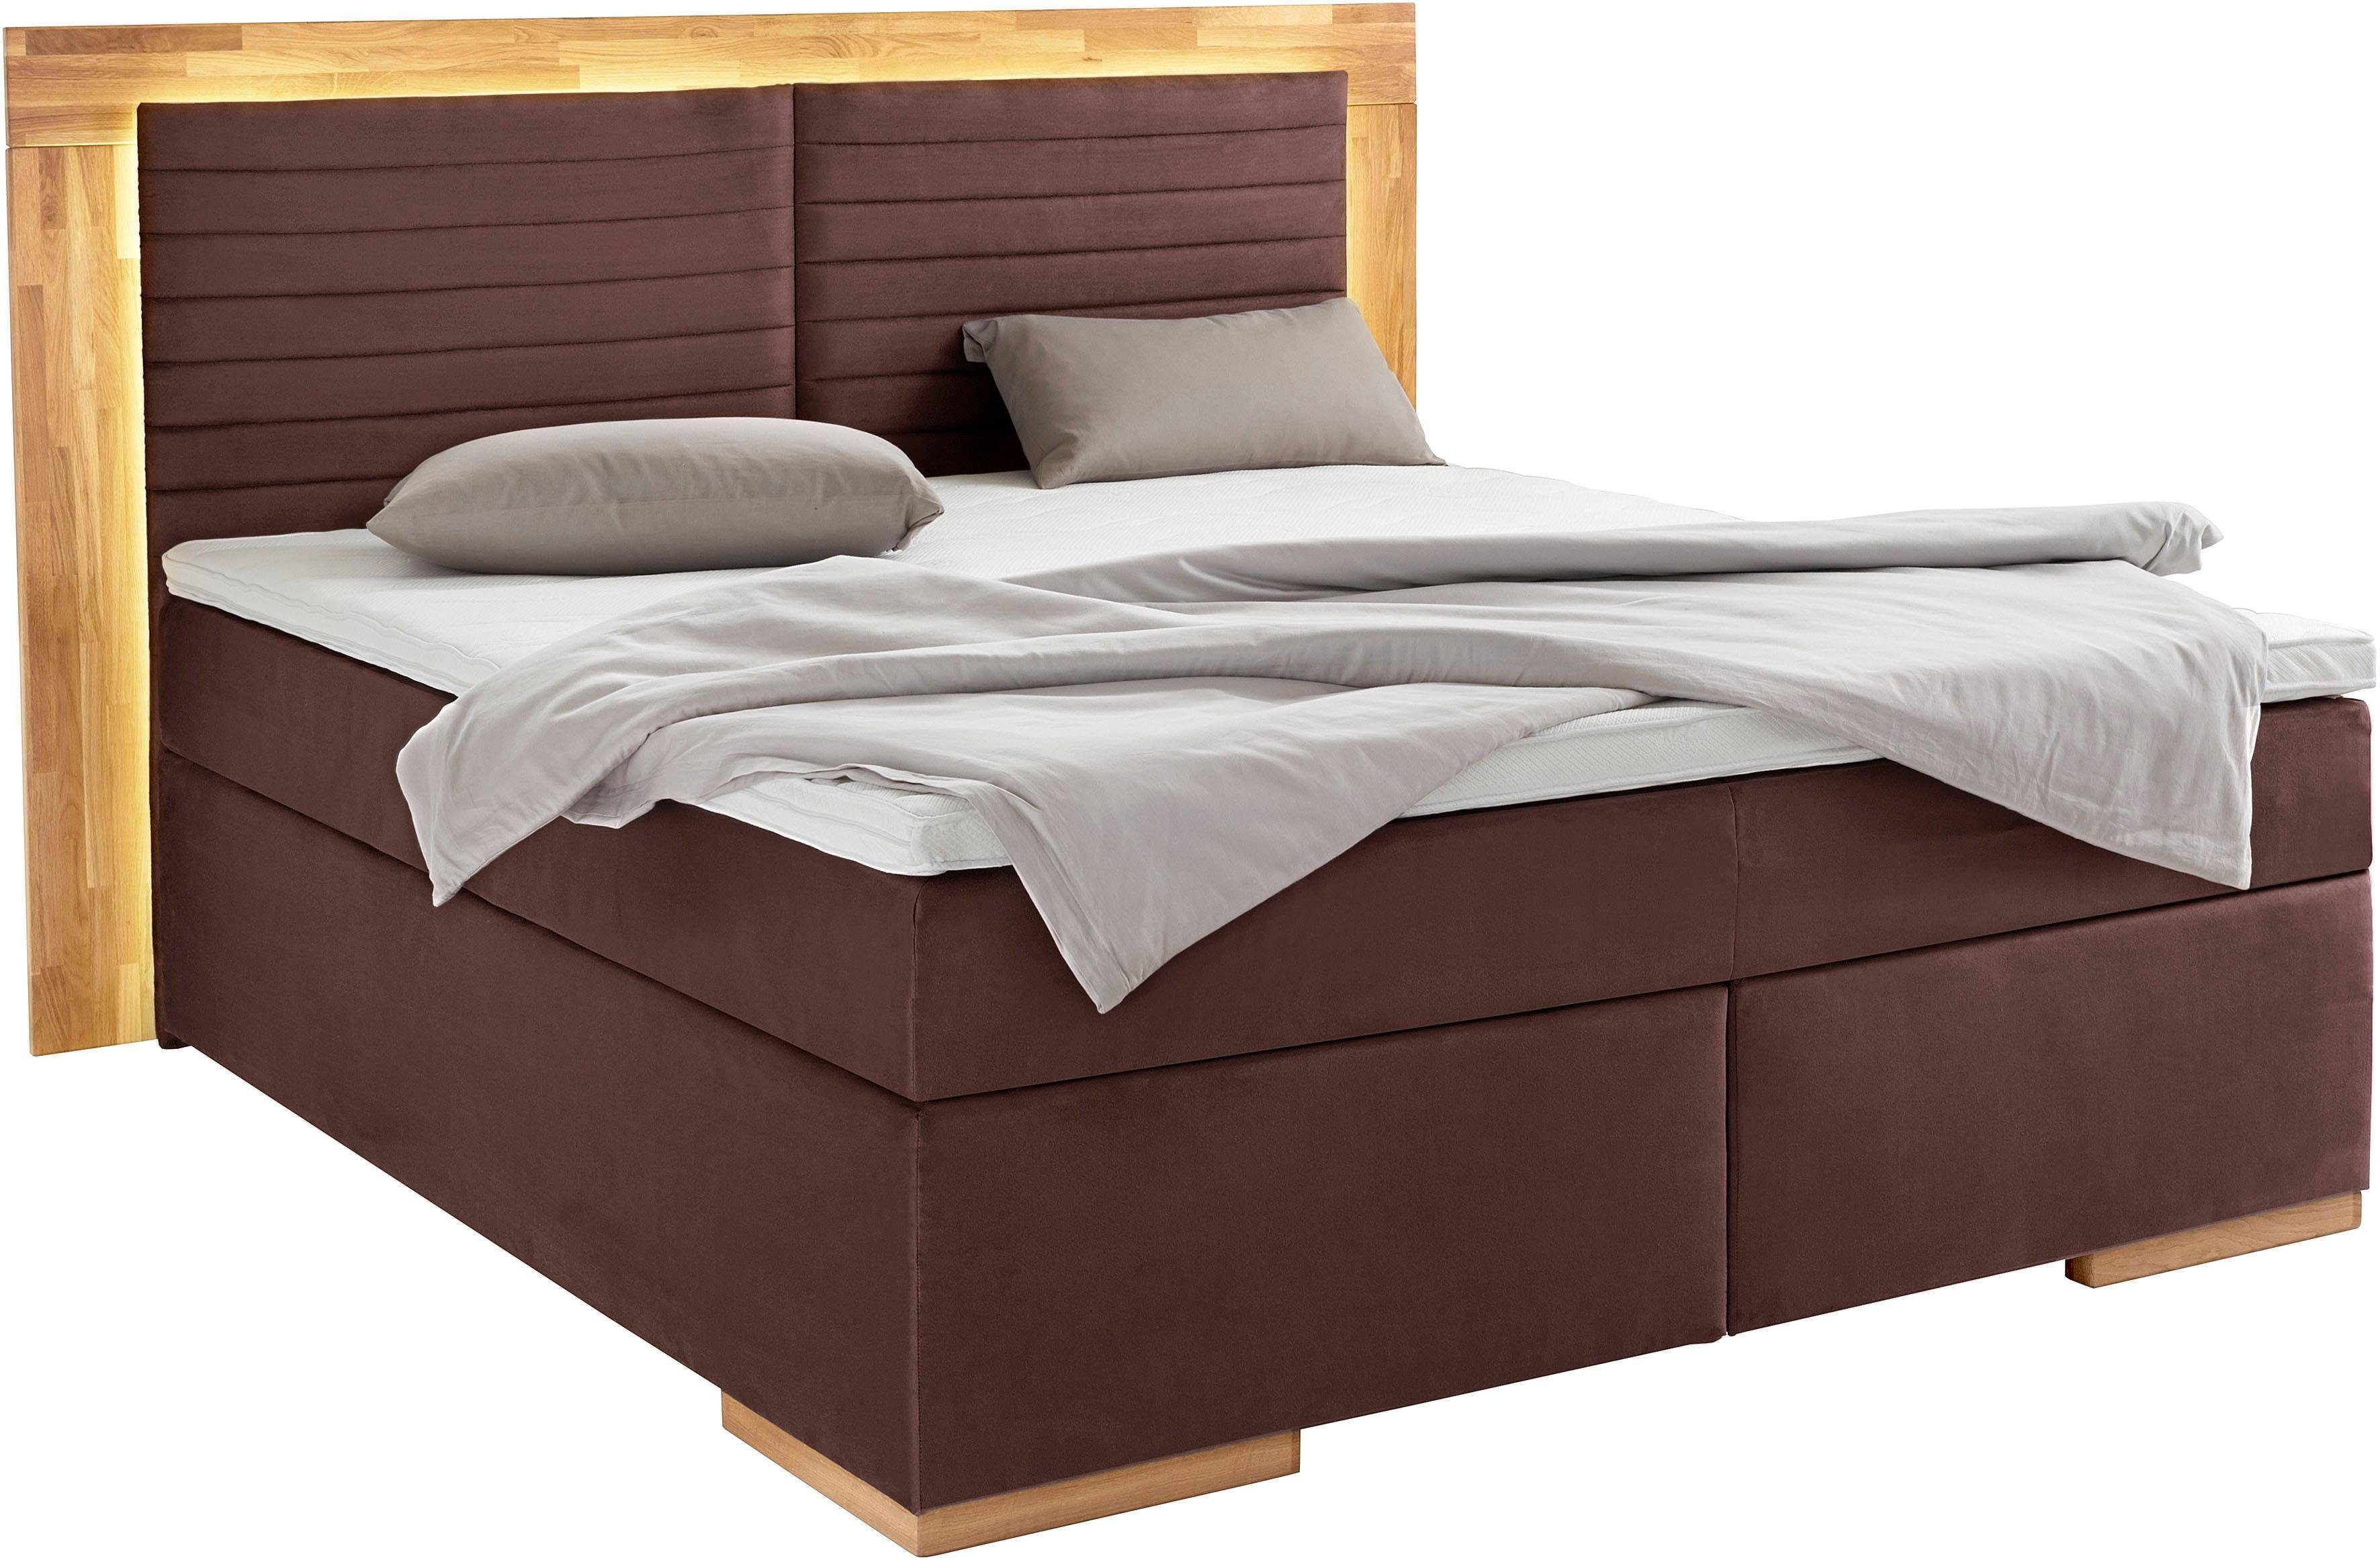 Places of Style Boxspringbett, 180×200 cm, H2, braun »Cup«, mit LED-Beleuchtung, mit Topper